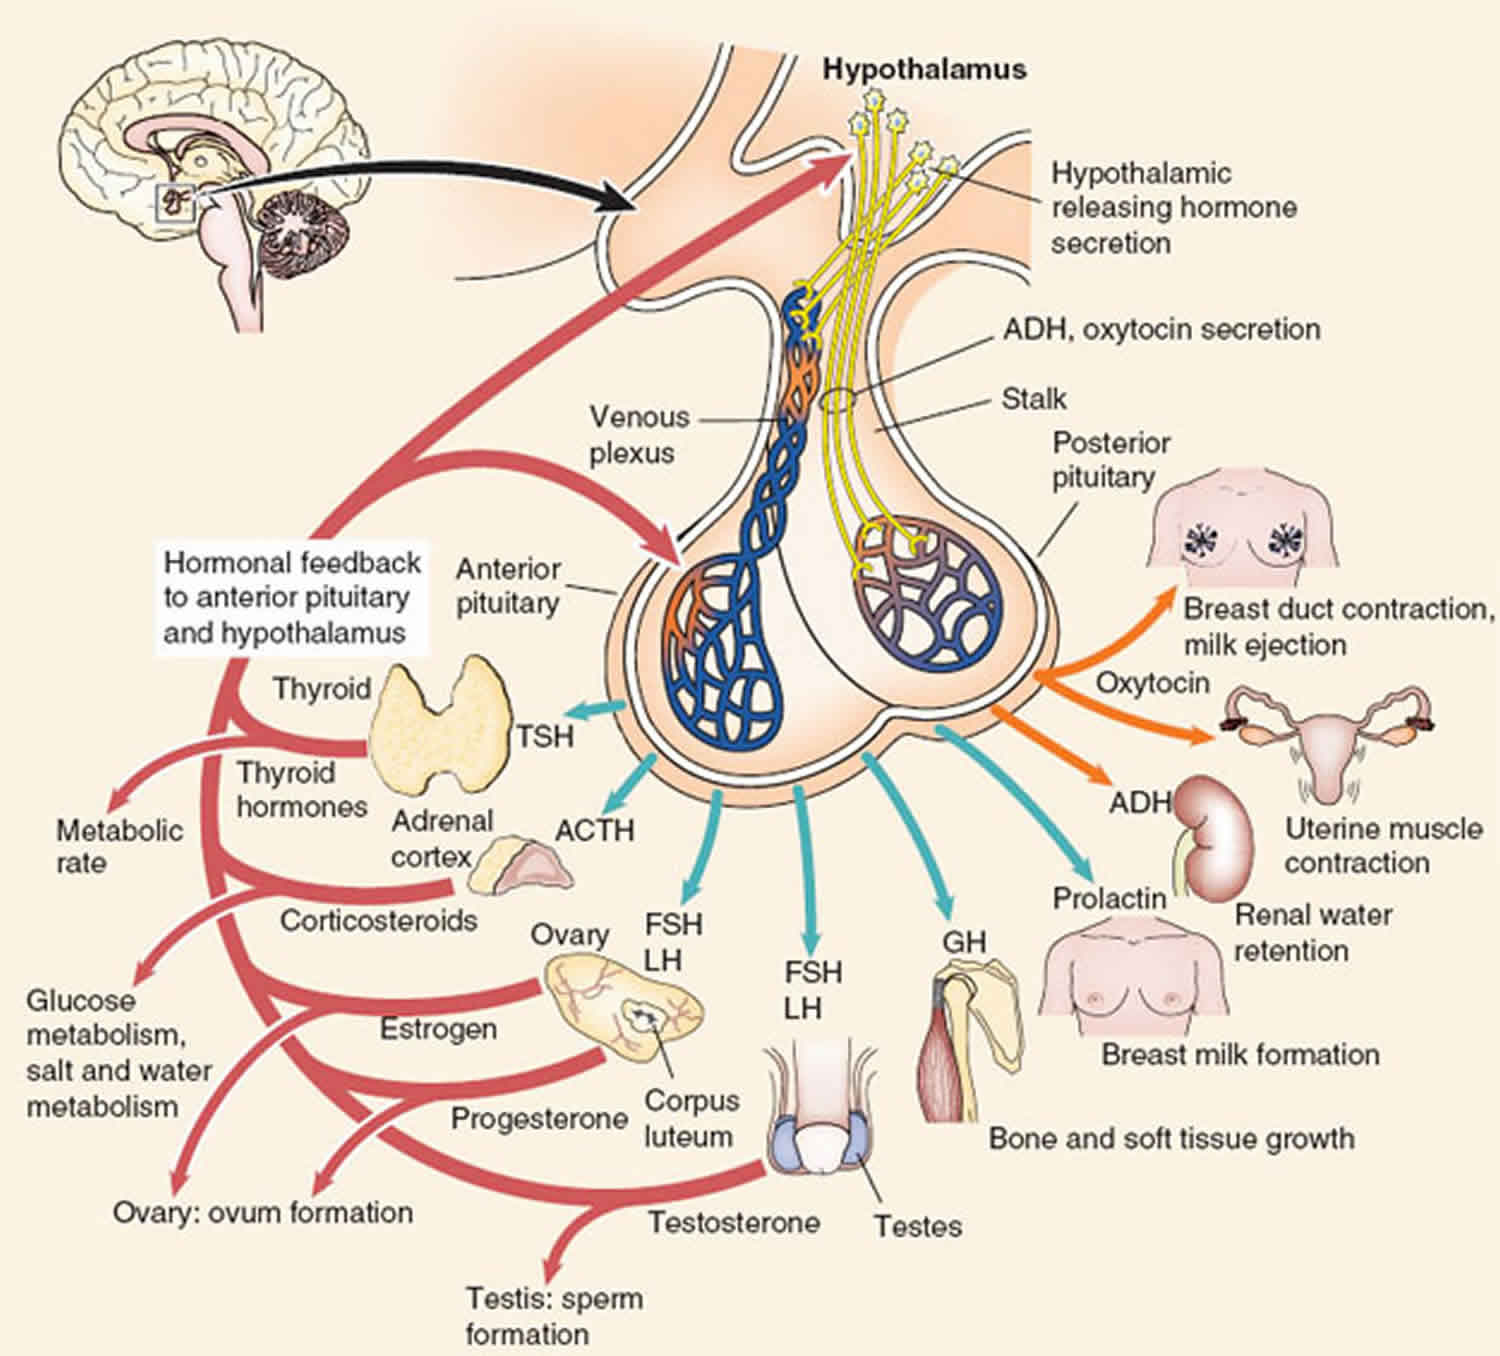 anterior and posterior pituitary hormones